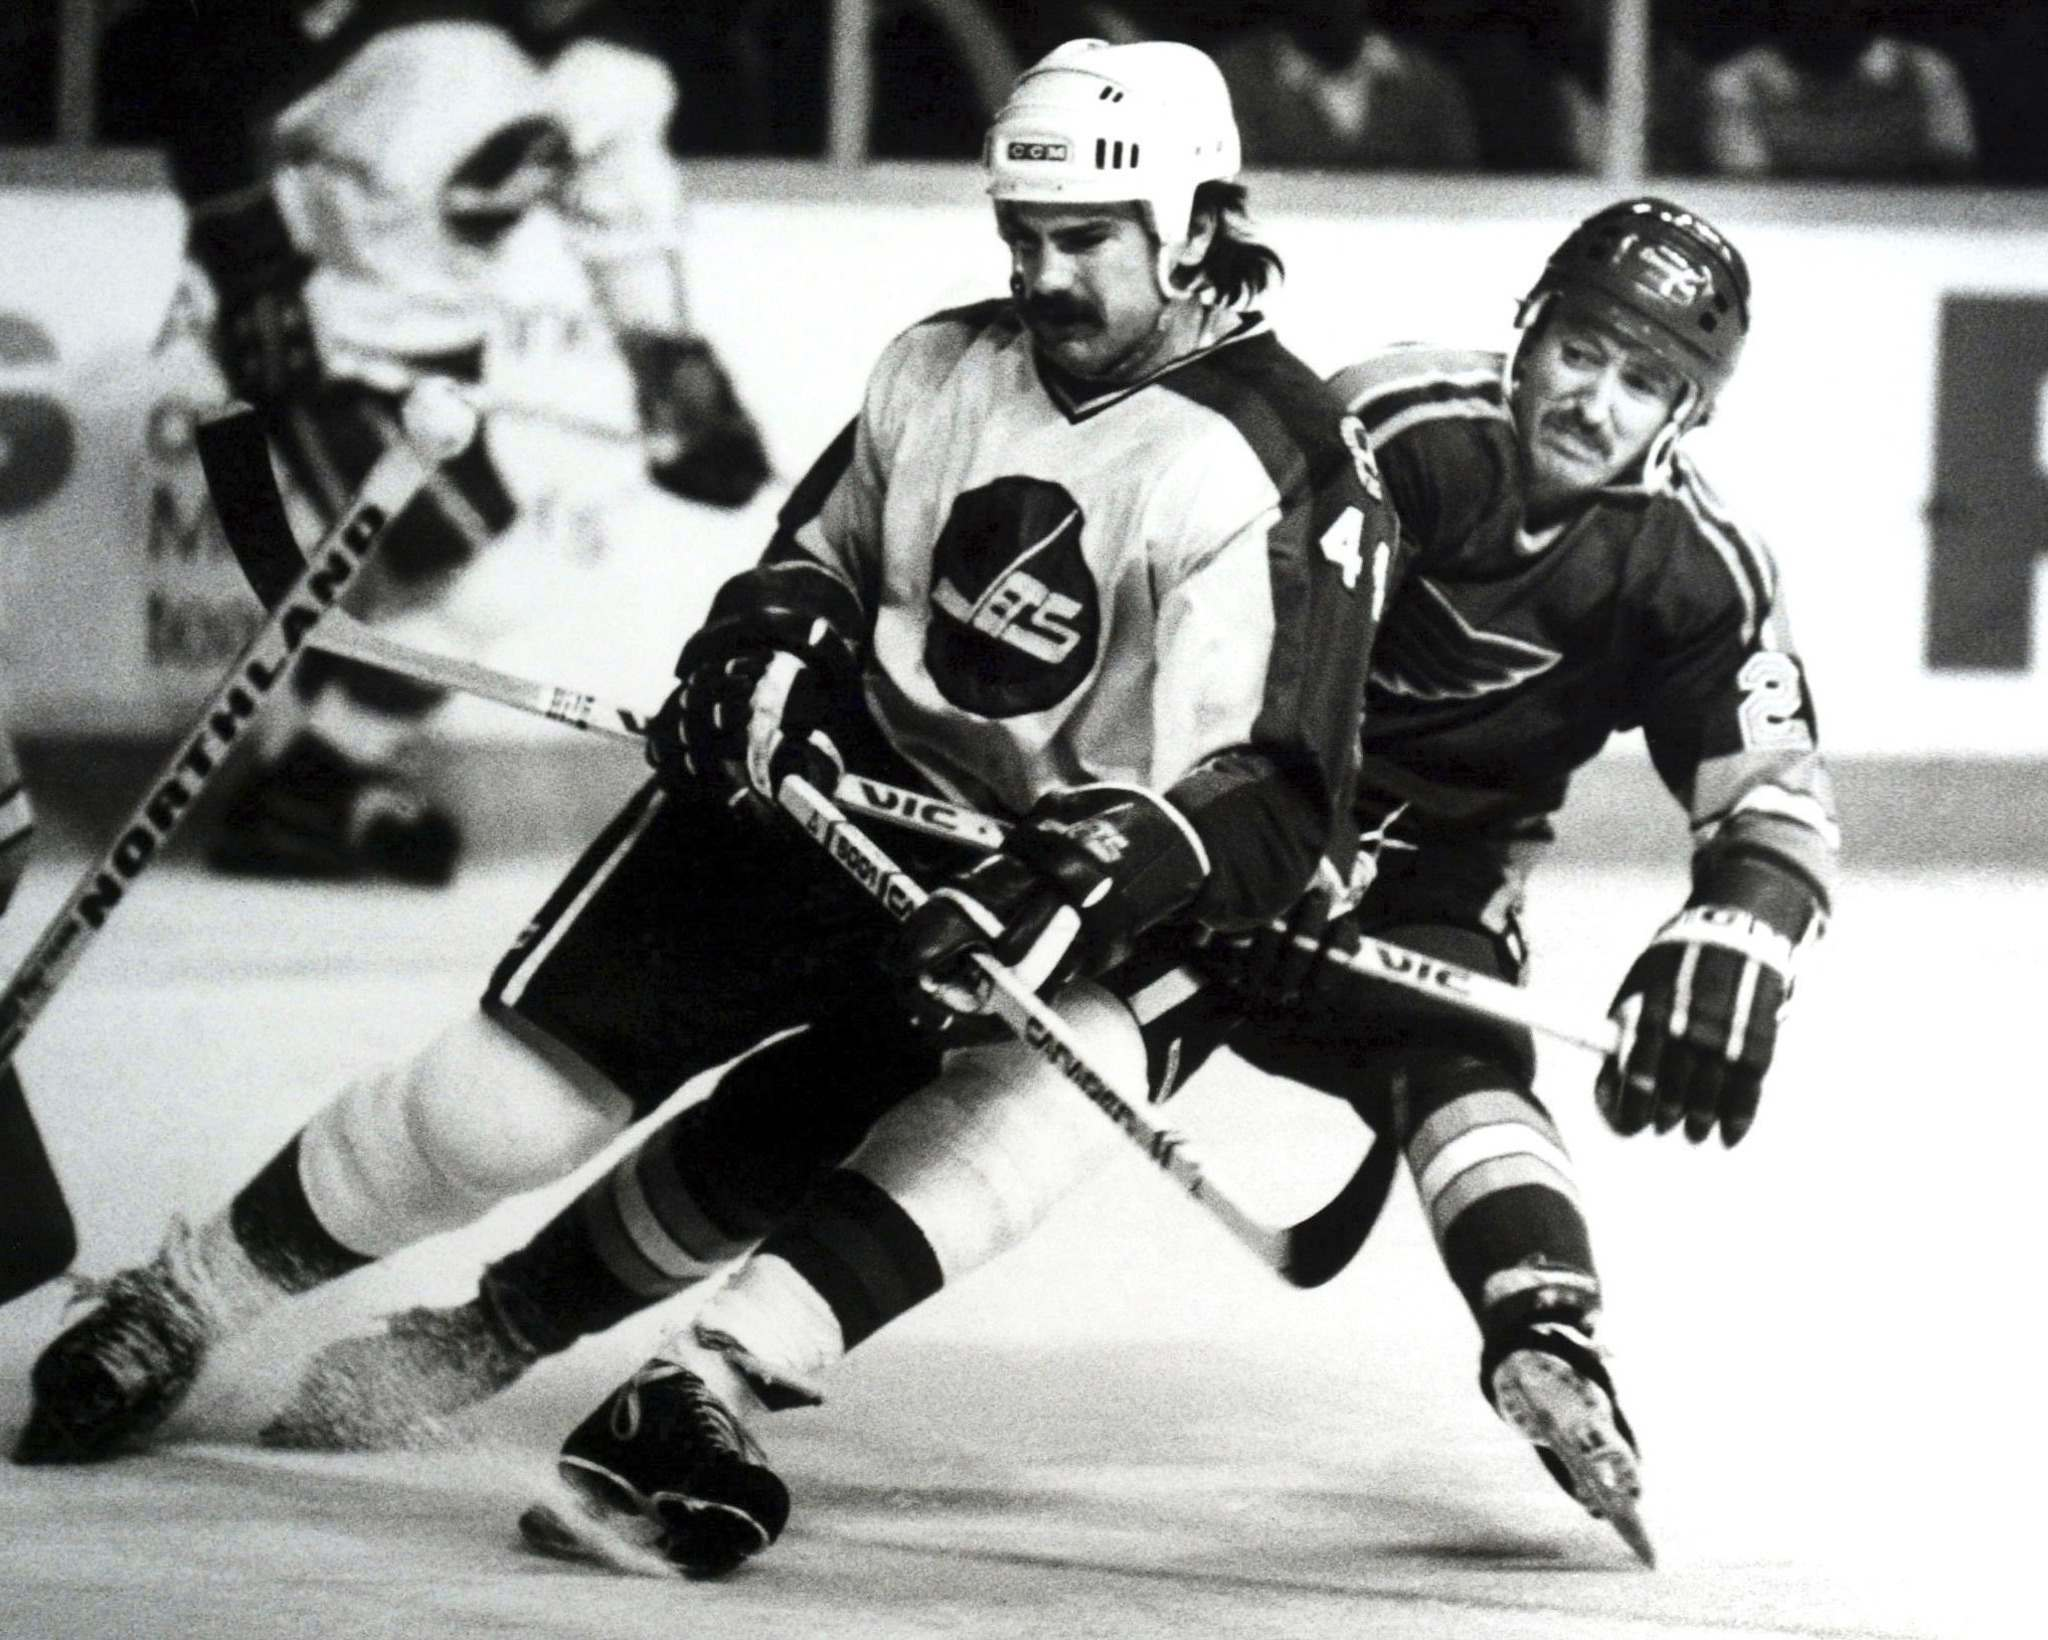 KEN GIGLIOTTI / WINNIPEG FREE PRESS FILES</p><p>Defenceman Dave Babych was the Jets first round draft pick, second overall in 1980 and played five seasons for the Jets.</p>